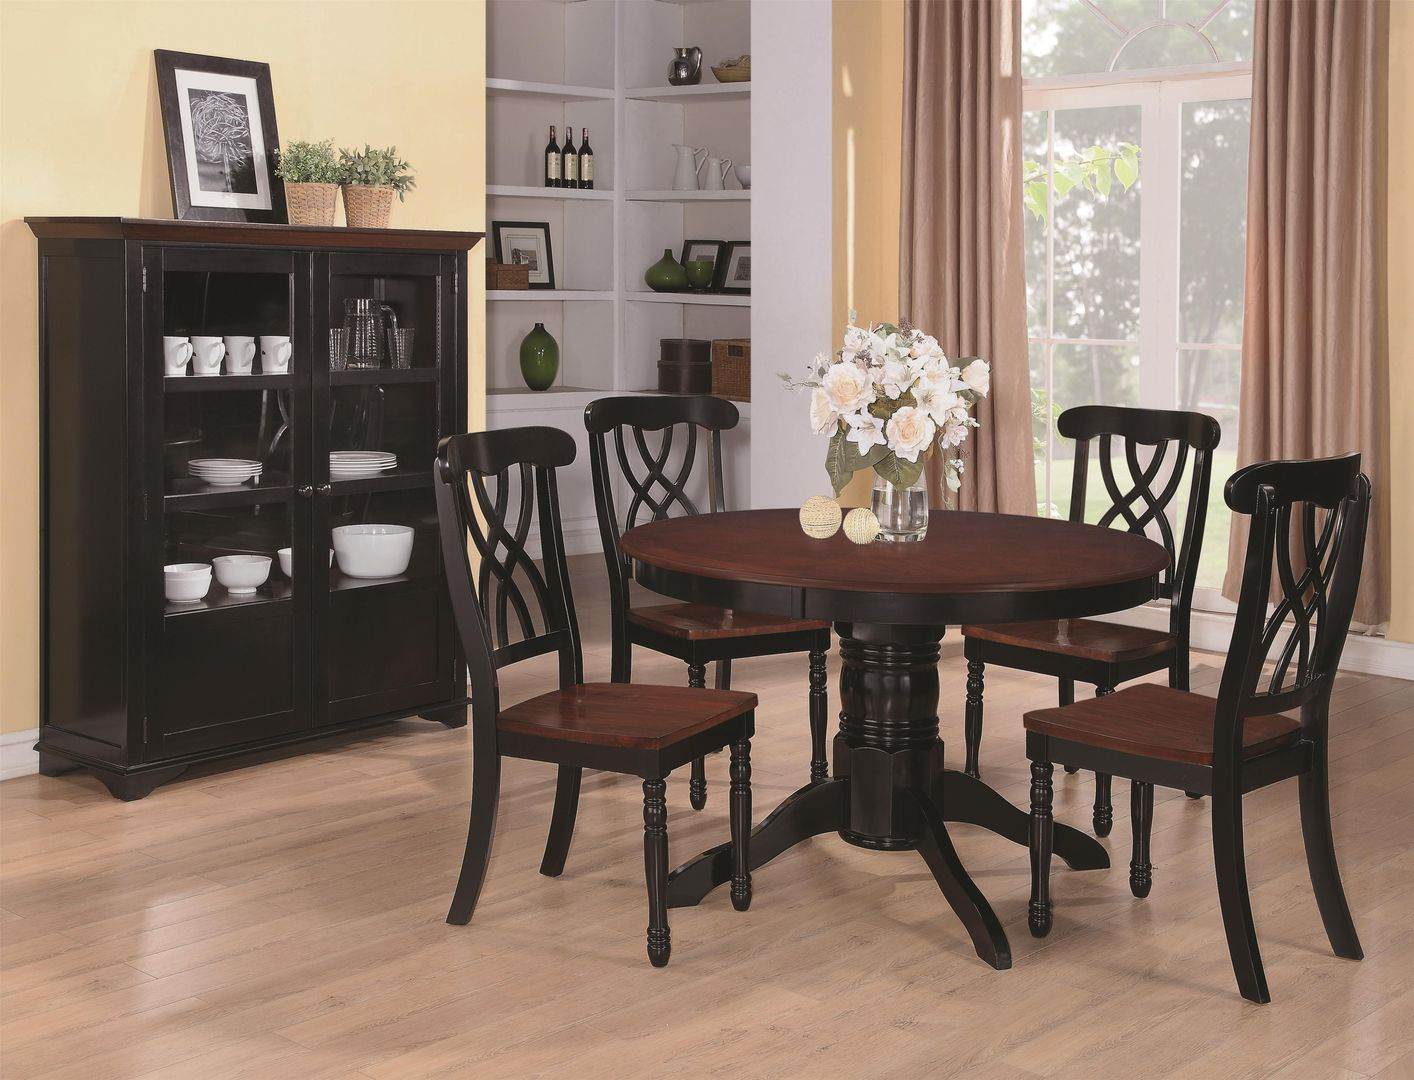 Ordinaire Addison Black And Cherry Wood Dining Table